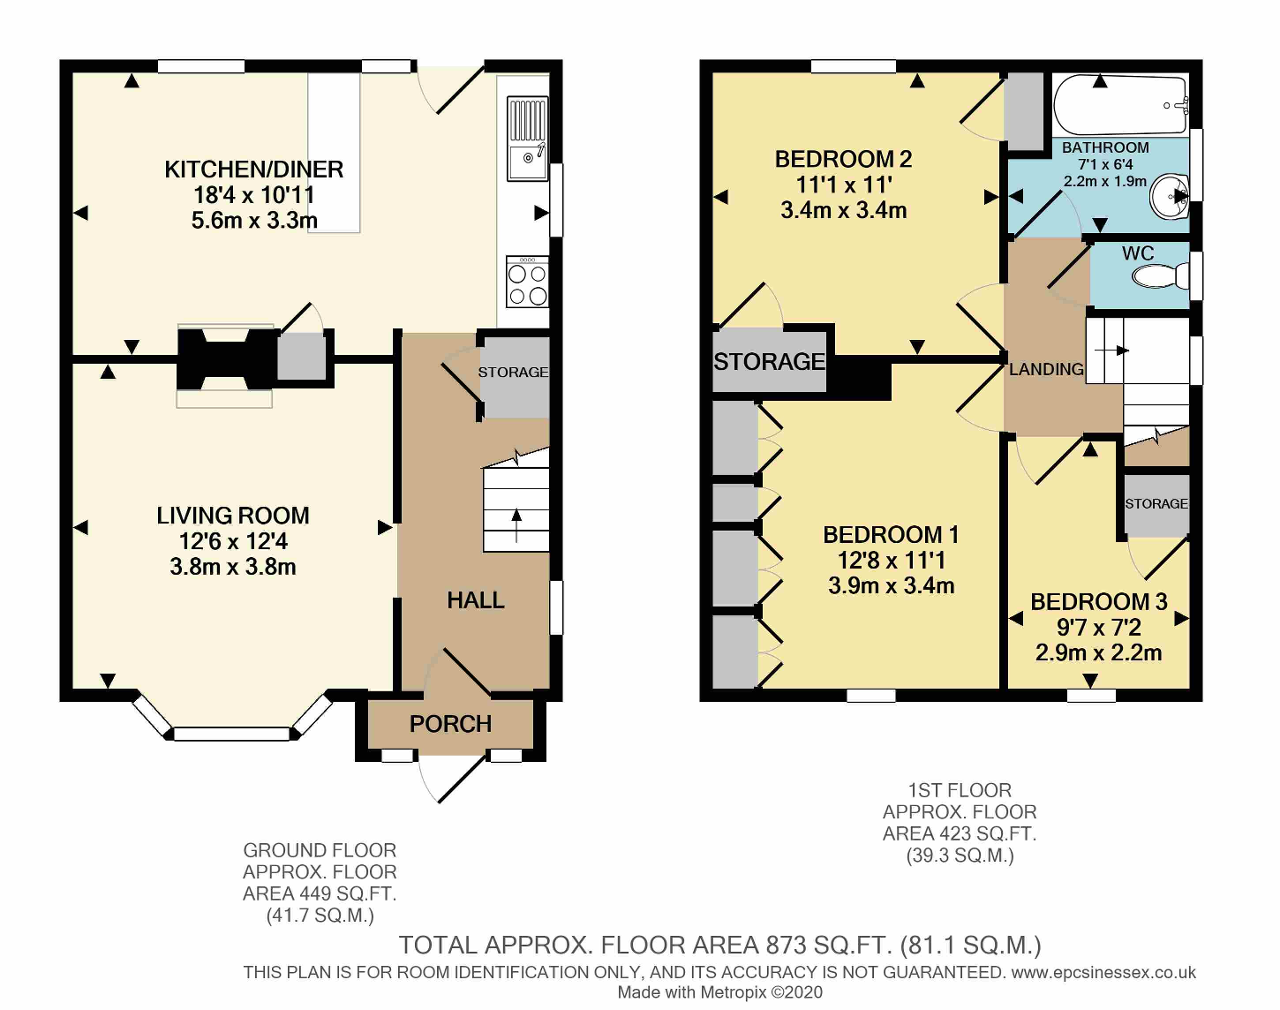 Floorplan of Ingleby Road, Dagenham, Essex, RM10 8SA